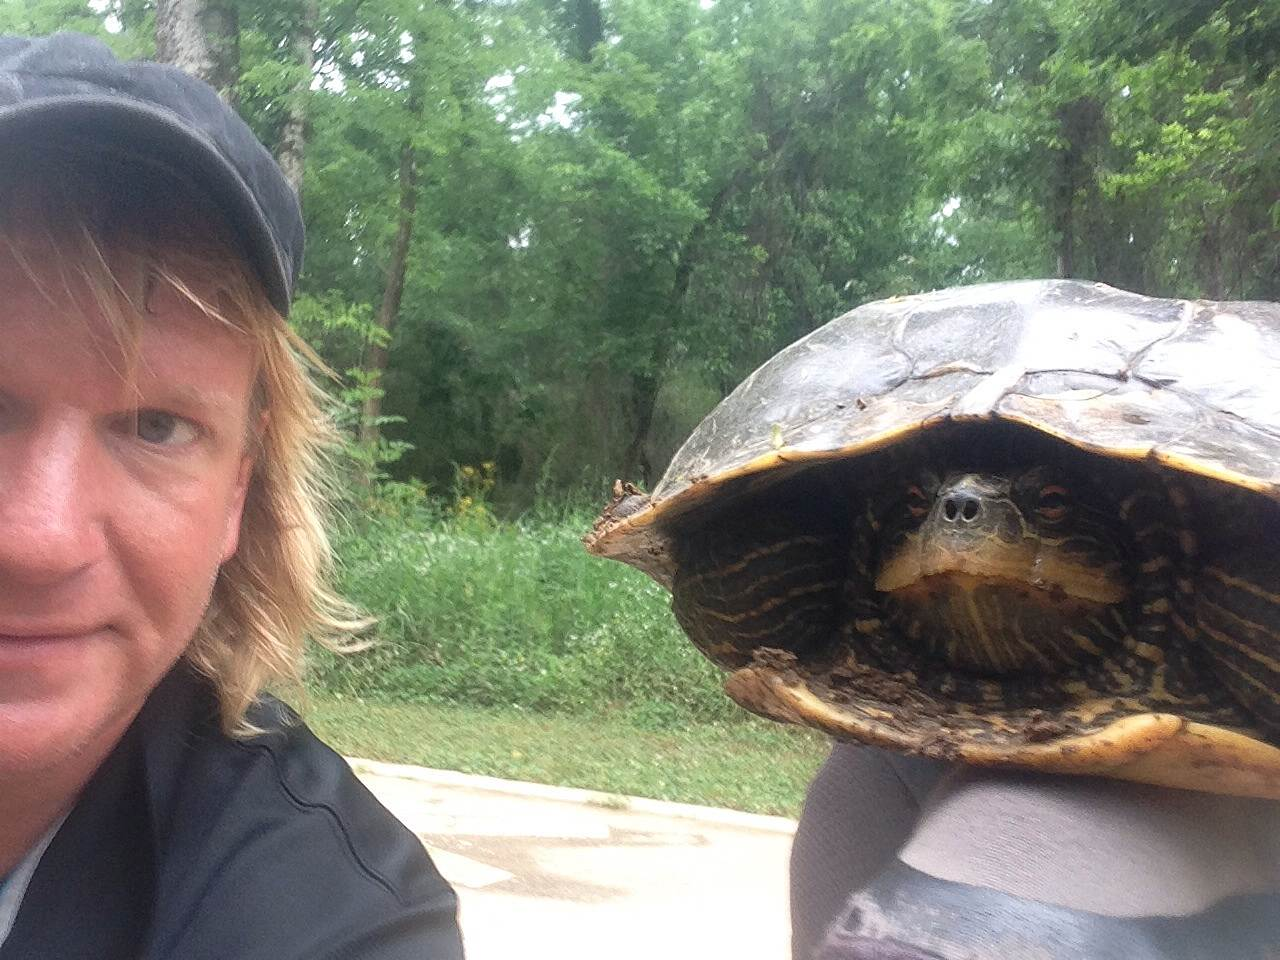 Big Cove Creek Greenway Turtle biking